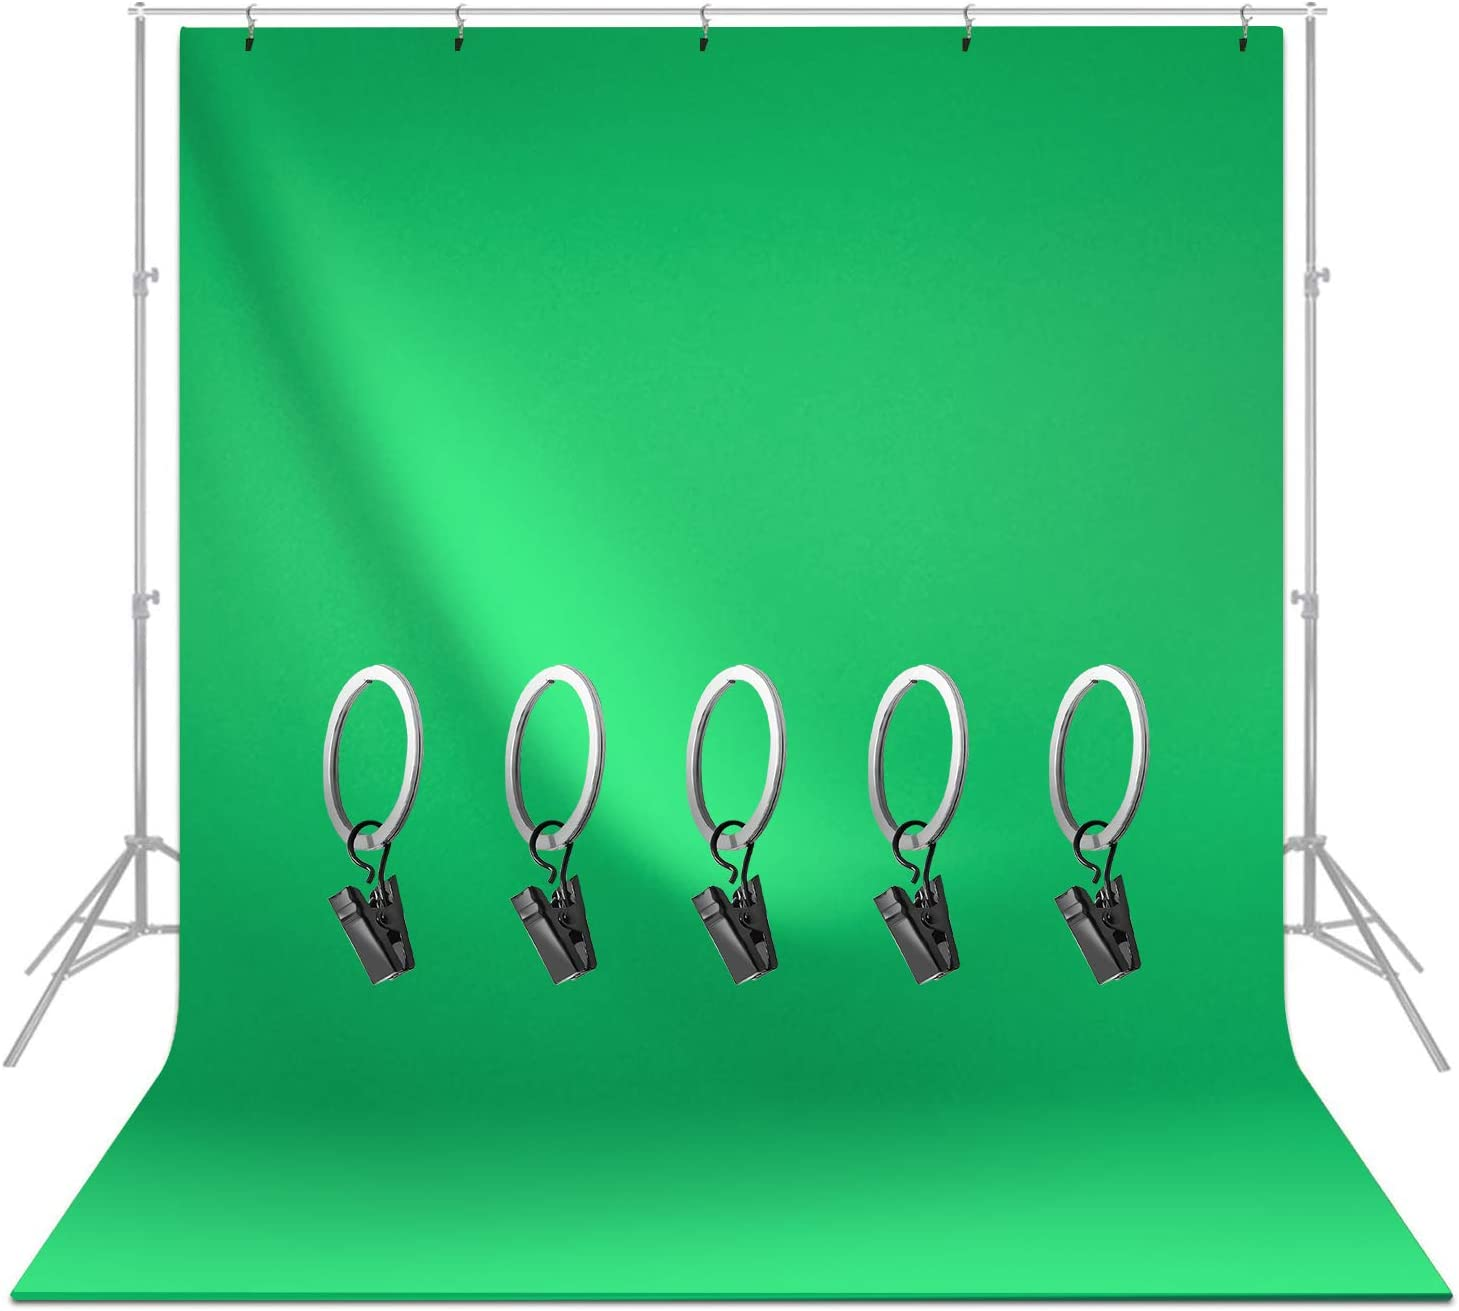 LimoStudio, 6 x 9 ft. Green Chromakey Screen Backdrop Muslin with Background Clip Holder, Soft Smooth Silk Non-glossy Texture, AGG1338